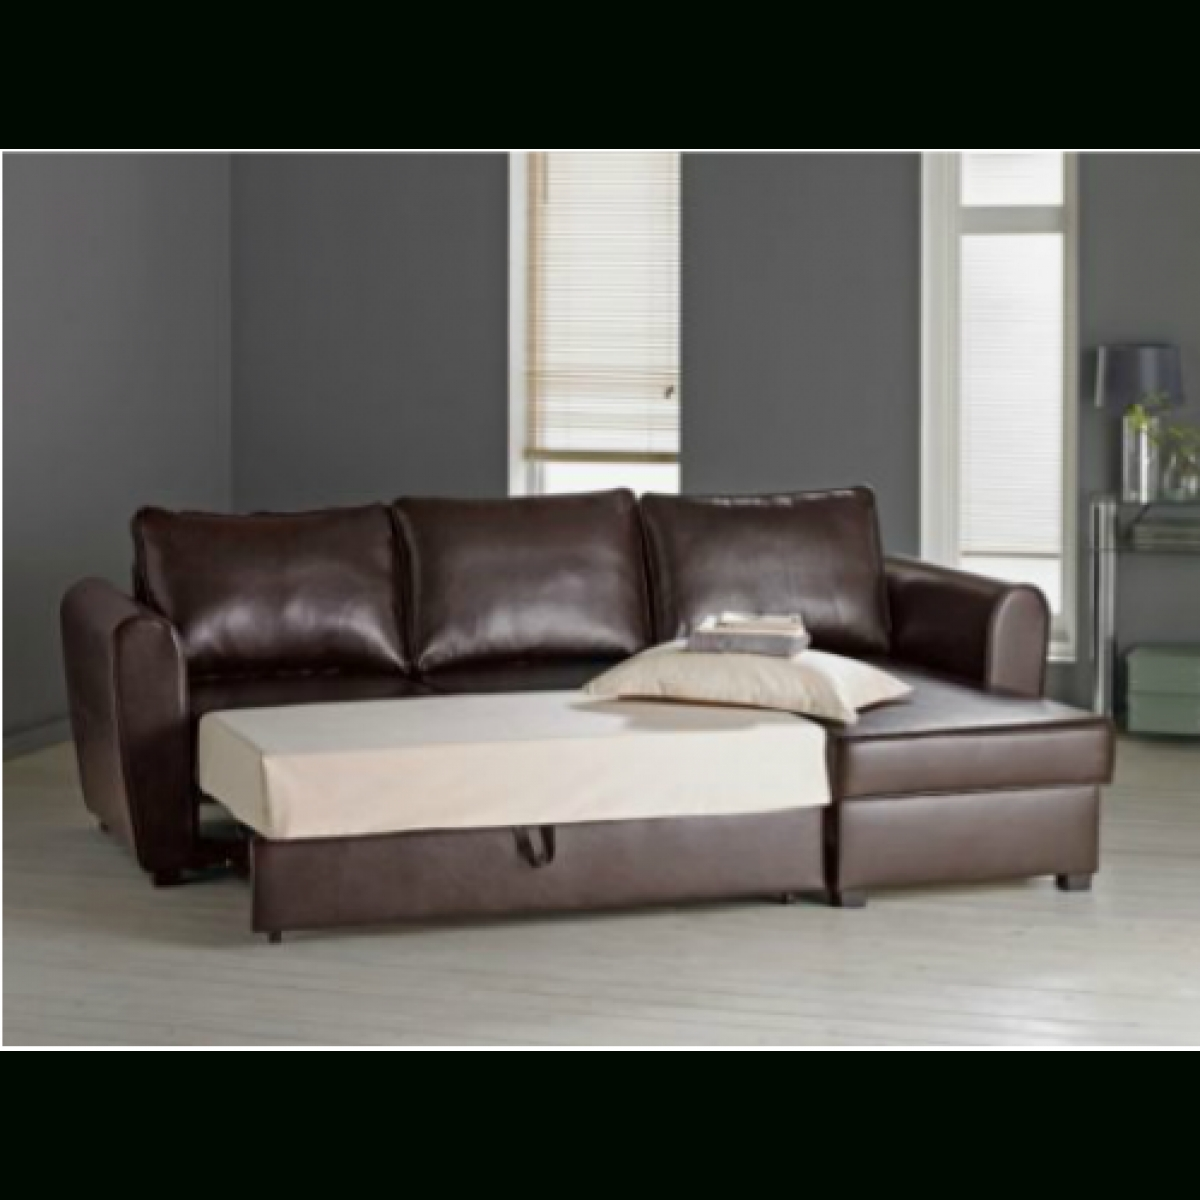 New Siena Fabric Corner Sofa Bed With Storage - Charcoal regarding Corner Couch Bed (Image 29 of 30)